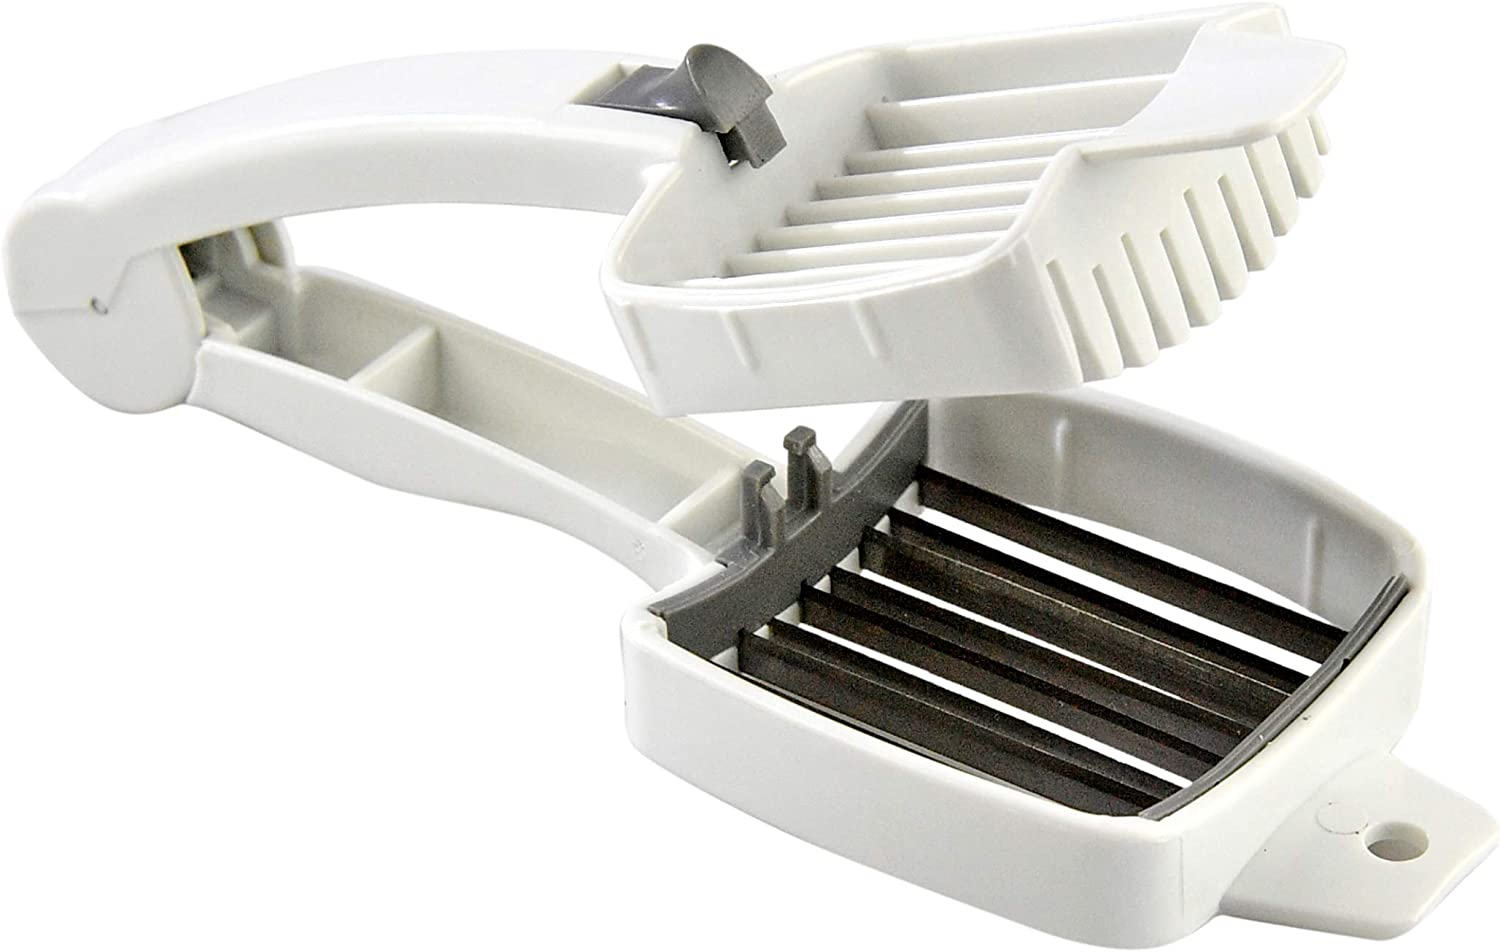 "HOME-X Handheld Multipurpose Food Slicer with Stainless-Steel Blades, Egg Slicer, Kitchen Tool, White, 7 3/4"" L x 3"" W x 1 7/8"" H"